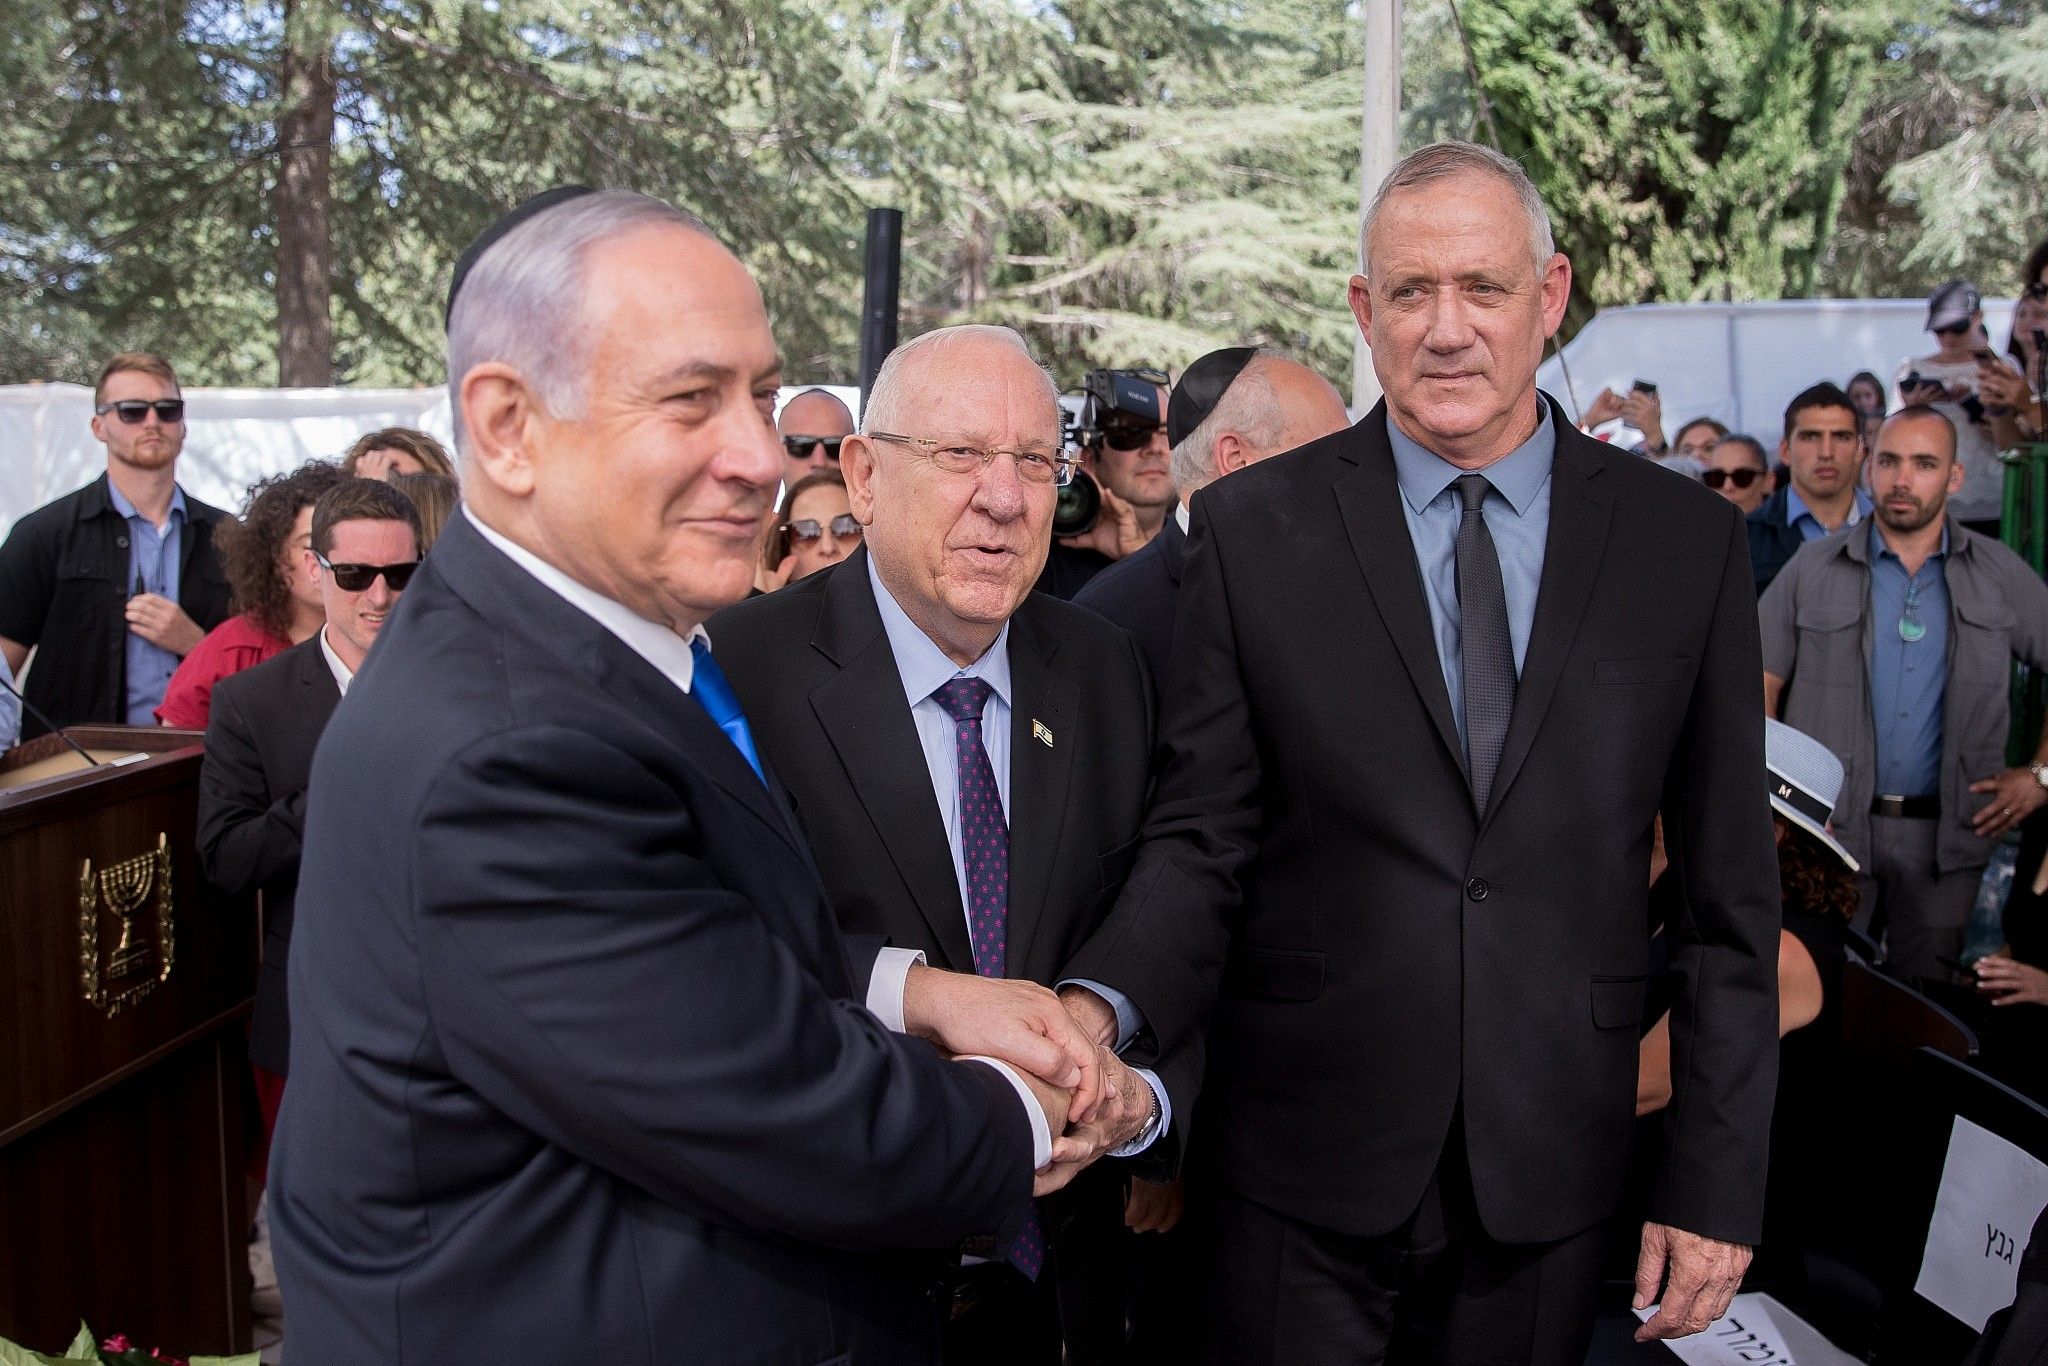 Netanyahu coalition offer rebuffed